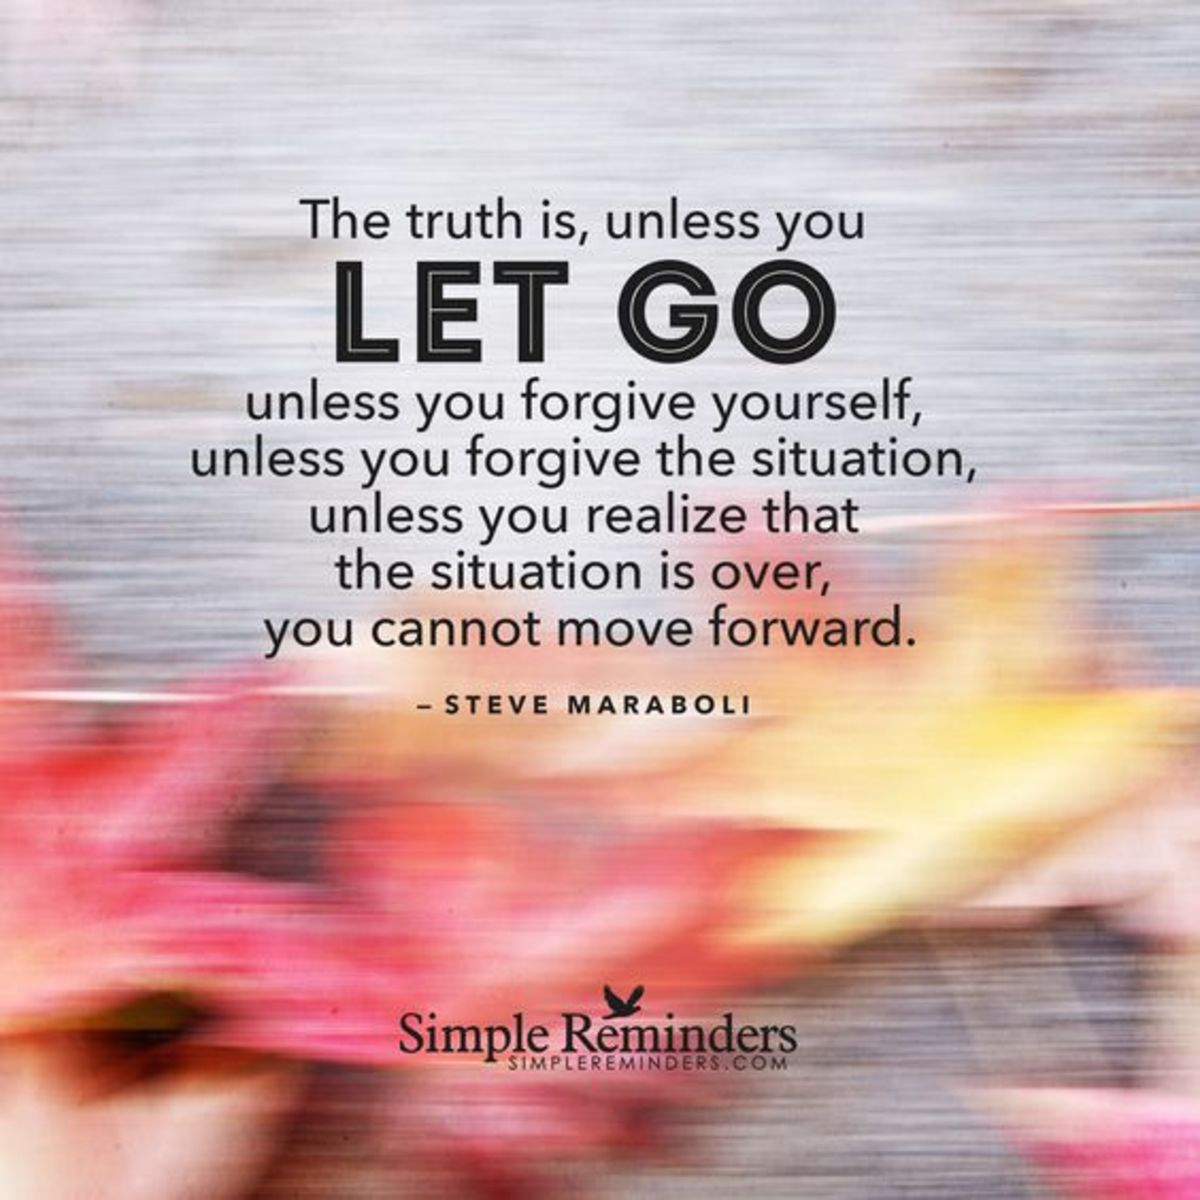 Bible Verses on Letting Go and Moving Forward | hubpages Bible Quotes About Moving On And Letting Go